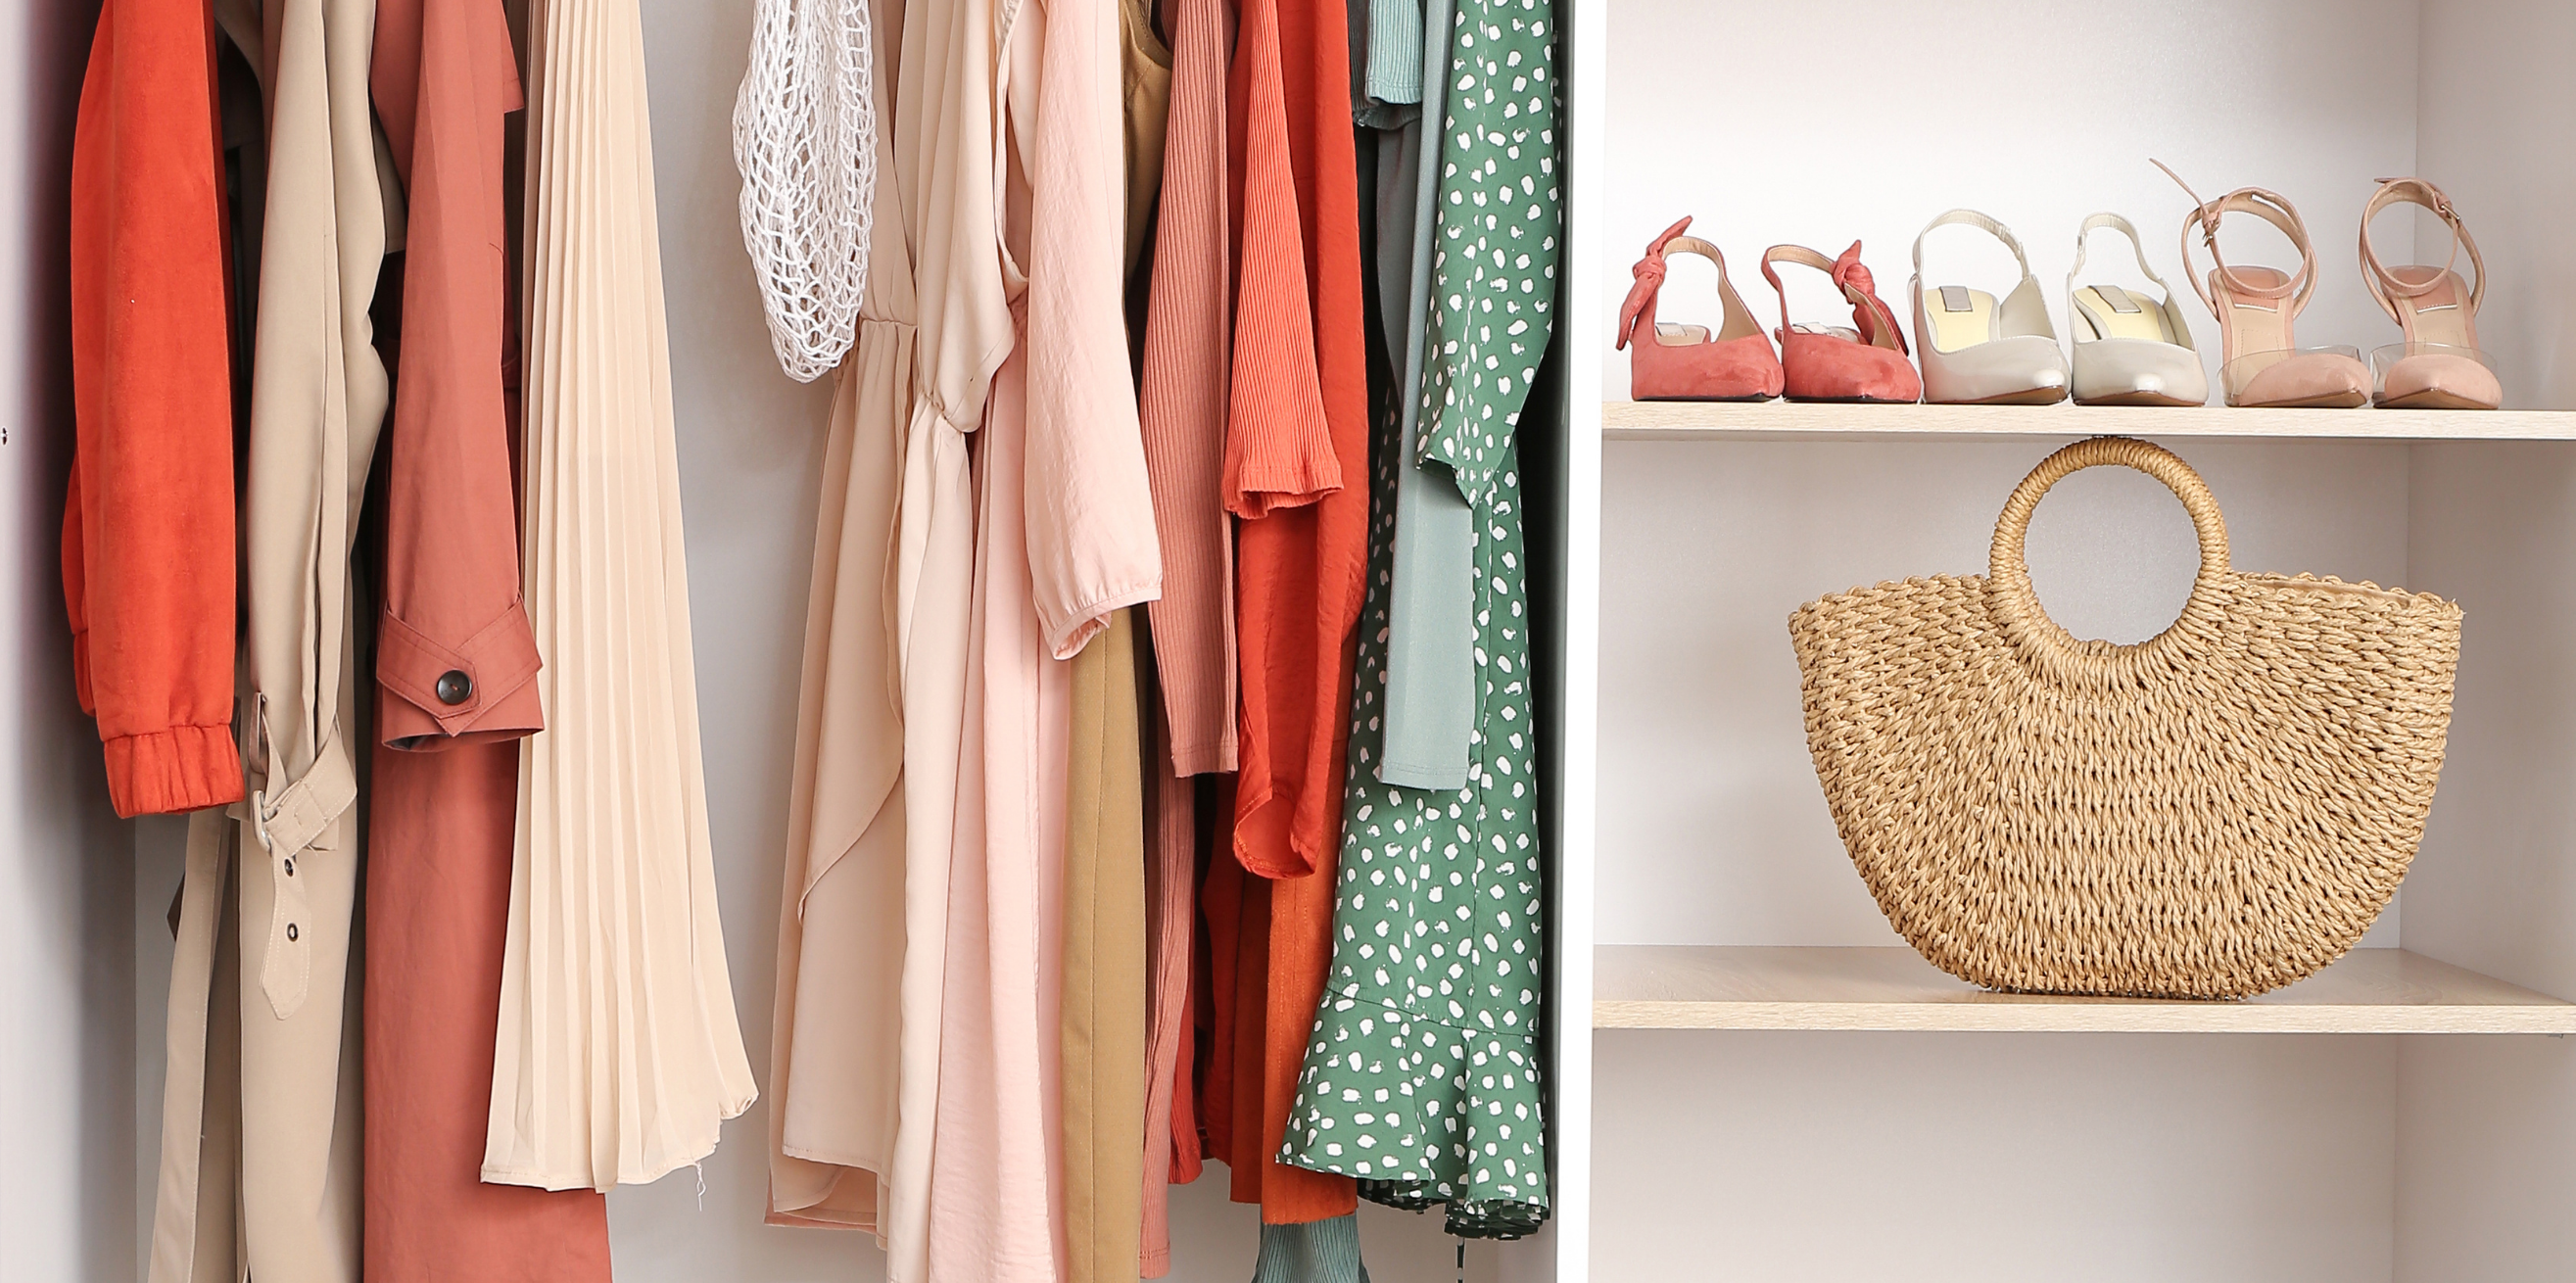 Spring Refresh: Ideas For Stylish Updates - closet filled with spring clothing